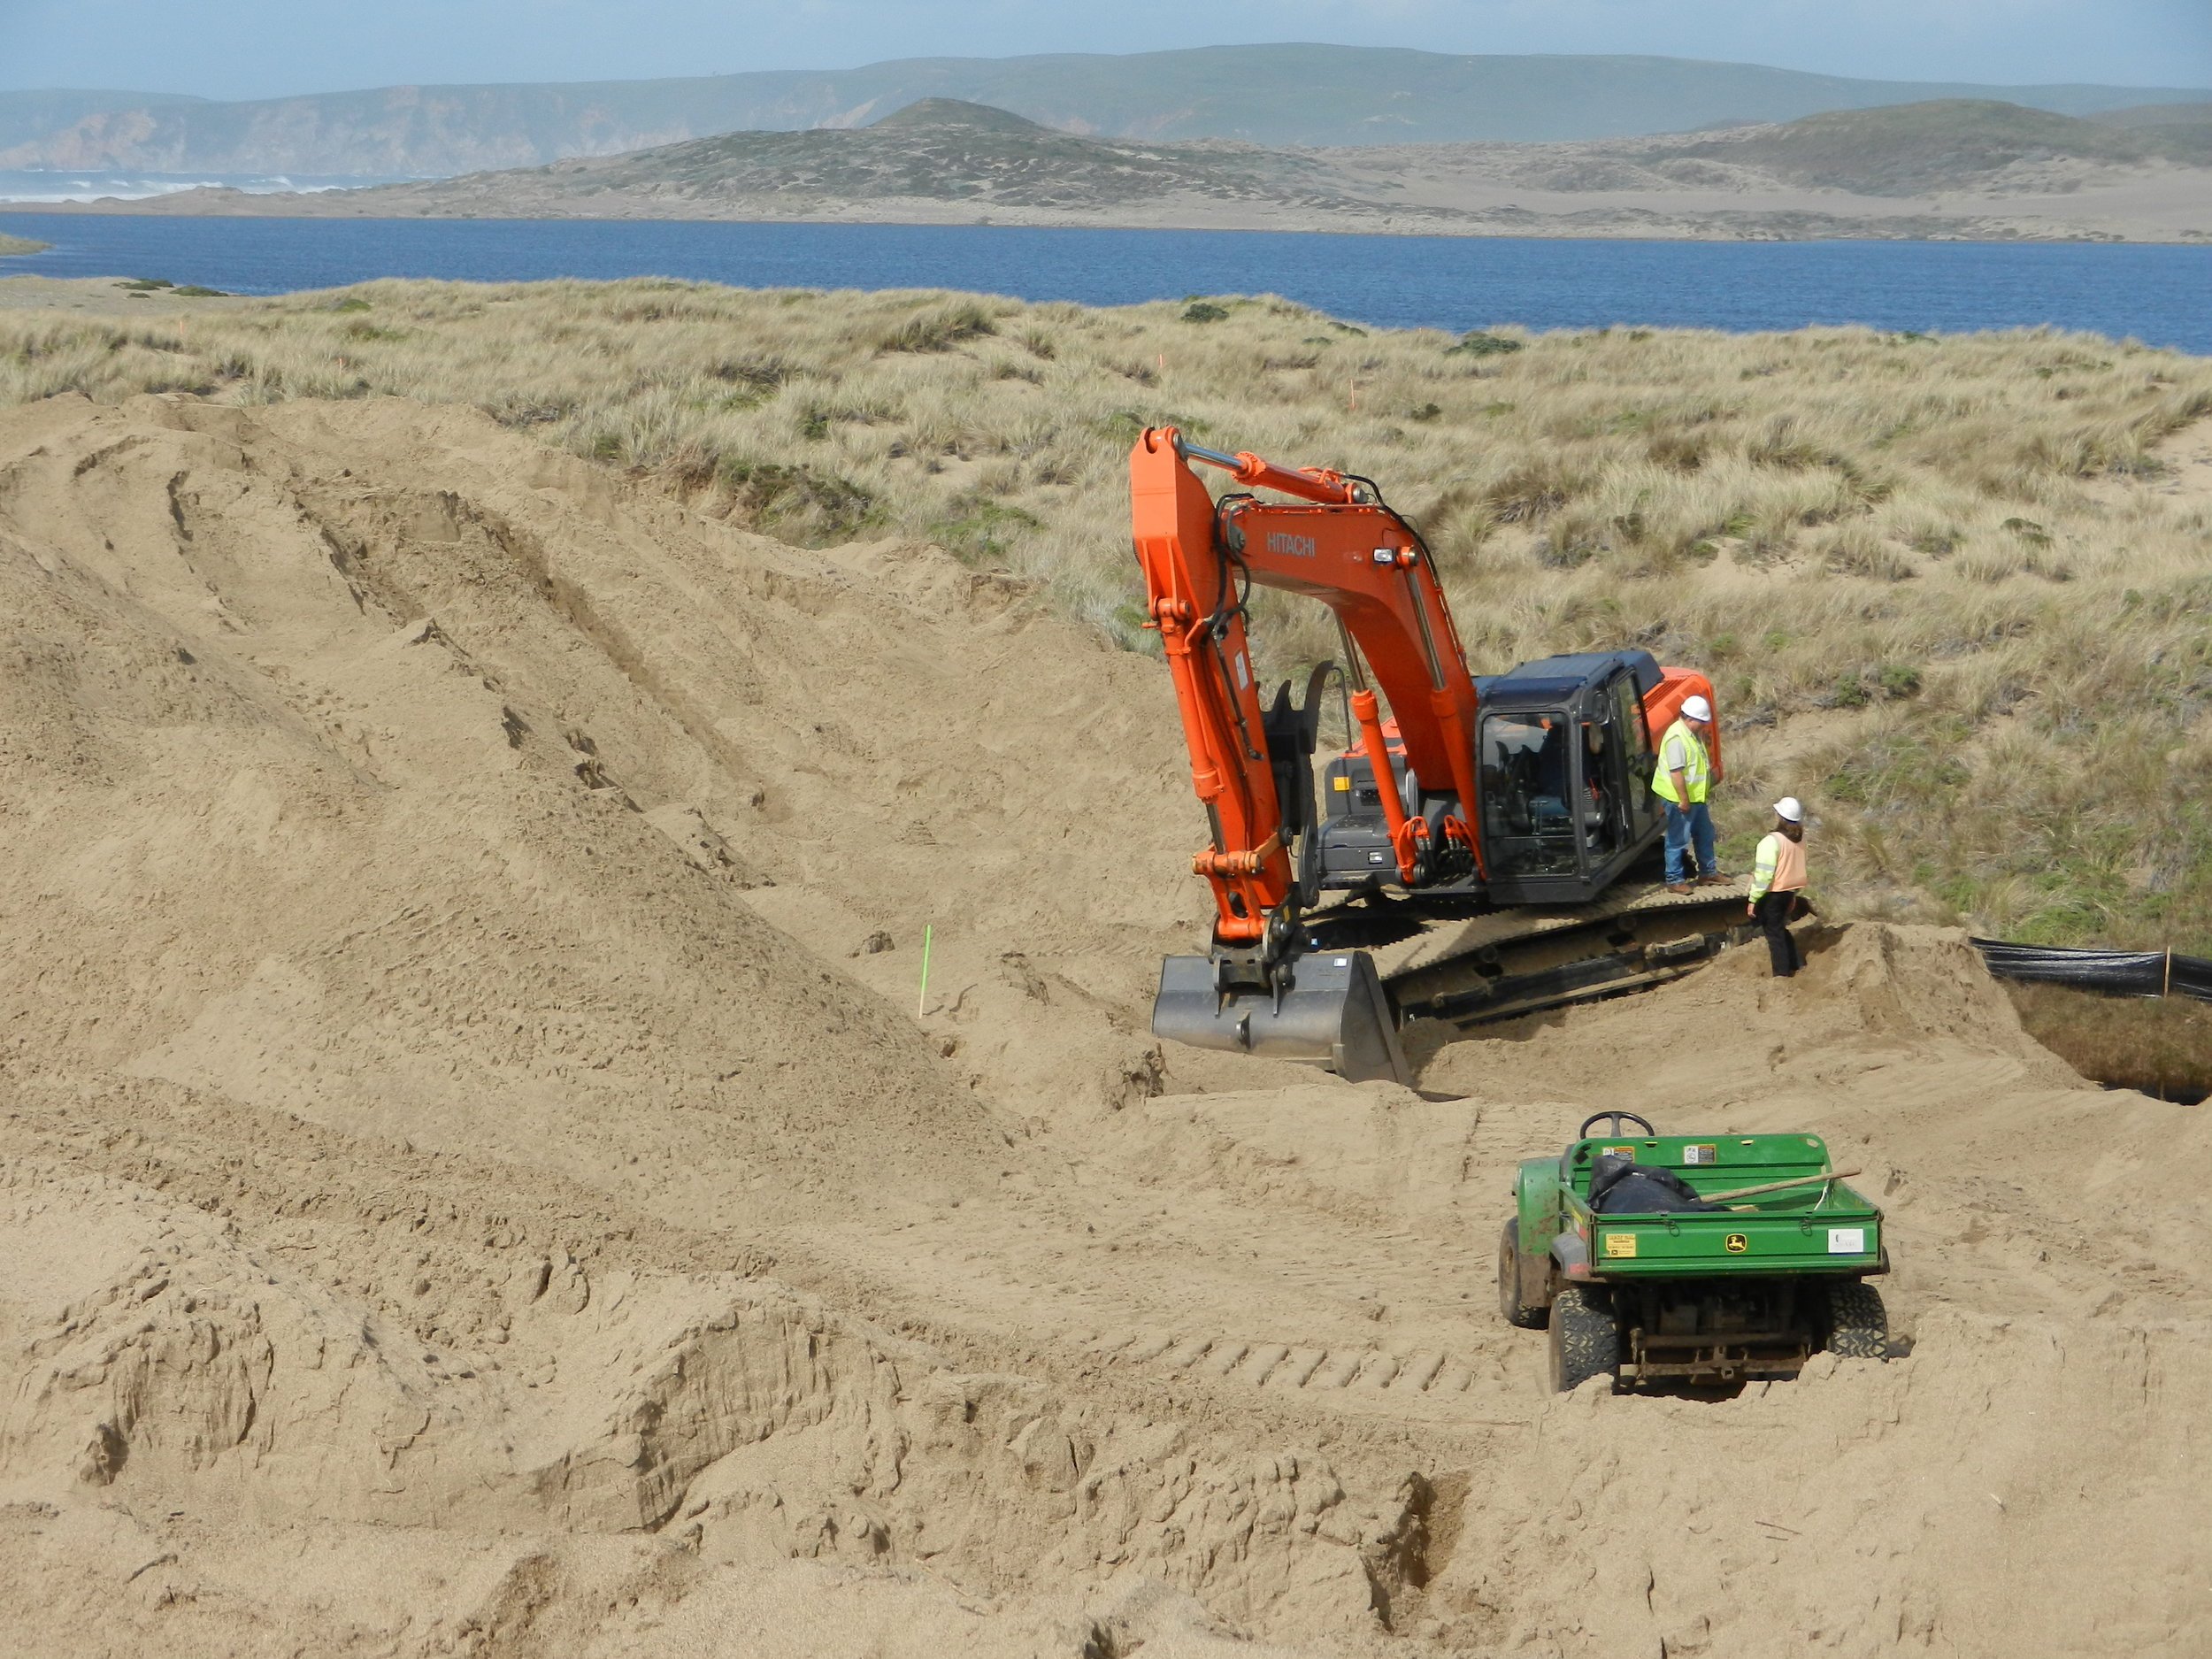 RESULTS - Though the project scope was essentially invasive species removal. The approach resulted in a project that was primarily large-scale excavation. To remove and bury the European beachgrass, Hanford excavated approximately 1,000,000 CY of sand. Six, 22-30-ton excavators, three D6-D8 size bulldozers and two track trucks (one dedicated to fuel delivery) were required to operate full time to maintain an average production rate of approximately 8,000 CY/day of excavation over the 6-month project.The massive task of flipping the large coastal dunes resulted in a significant reduction of European beachgrass thatch and seedbank which allowed the native plant diversity to establish.